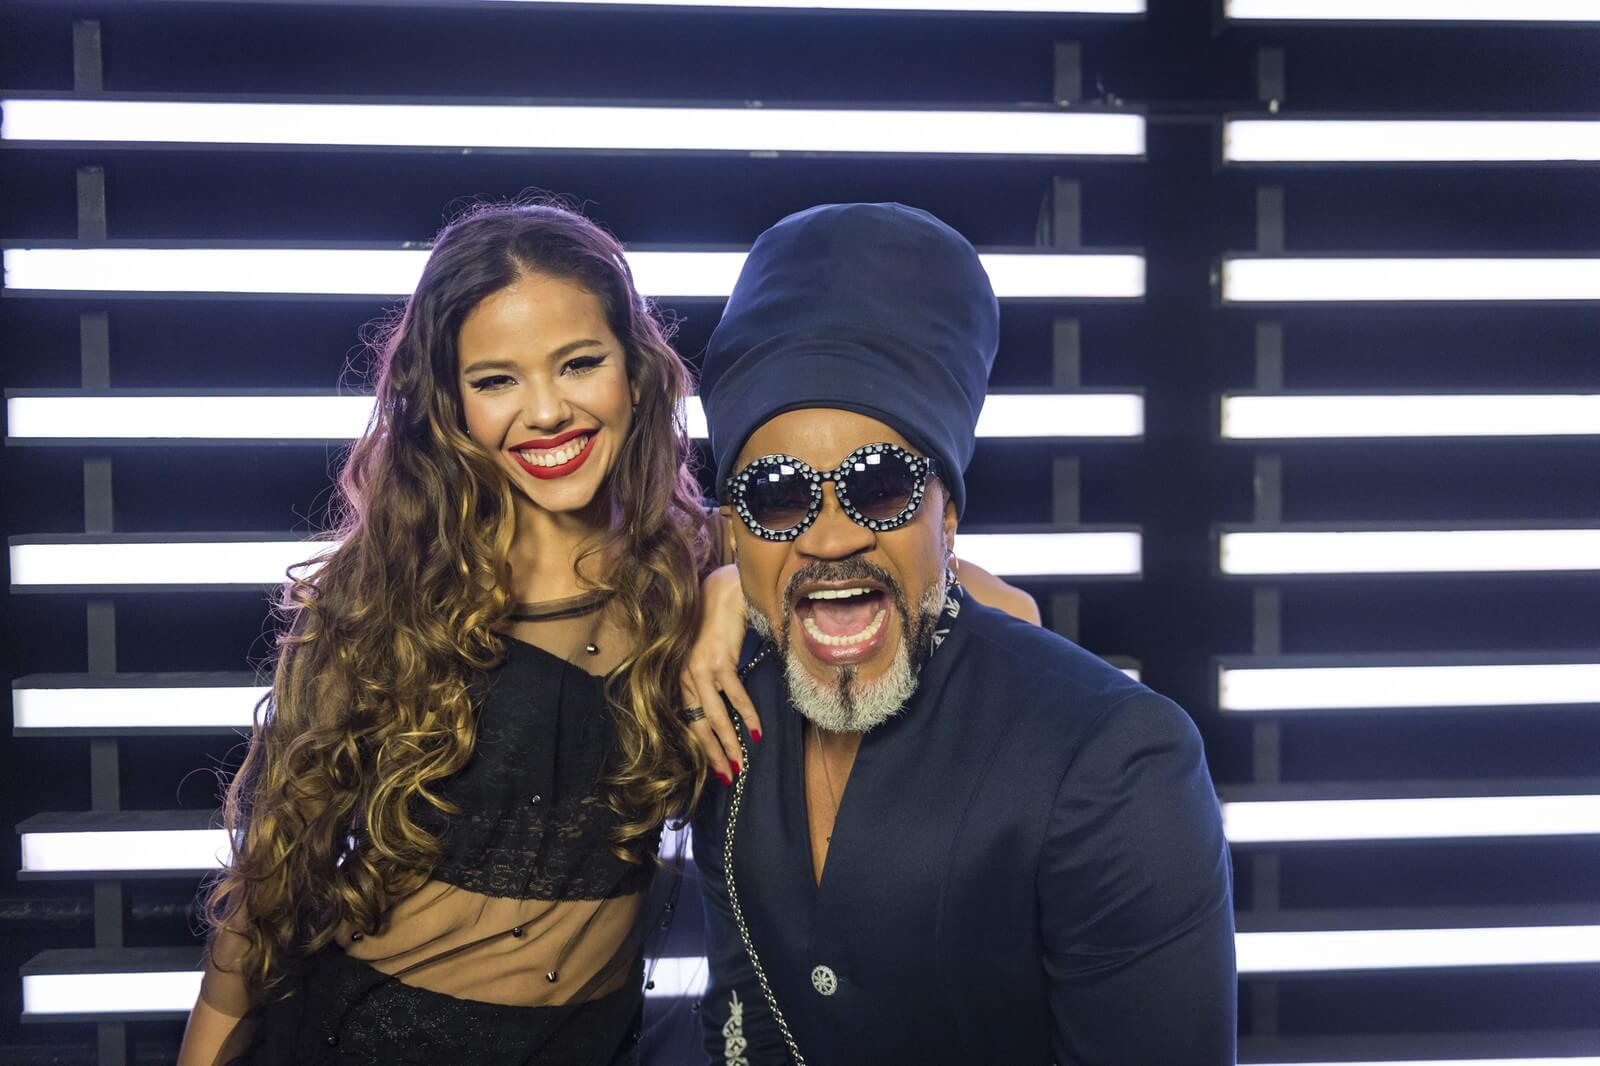 erica-natuza-the-voice-brasil-final